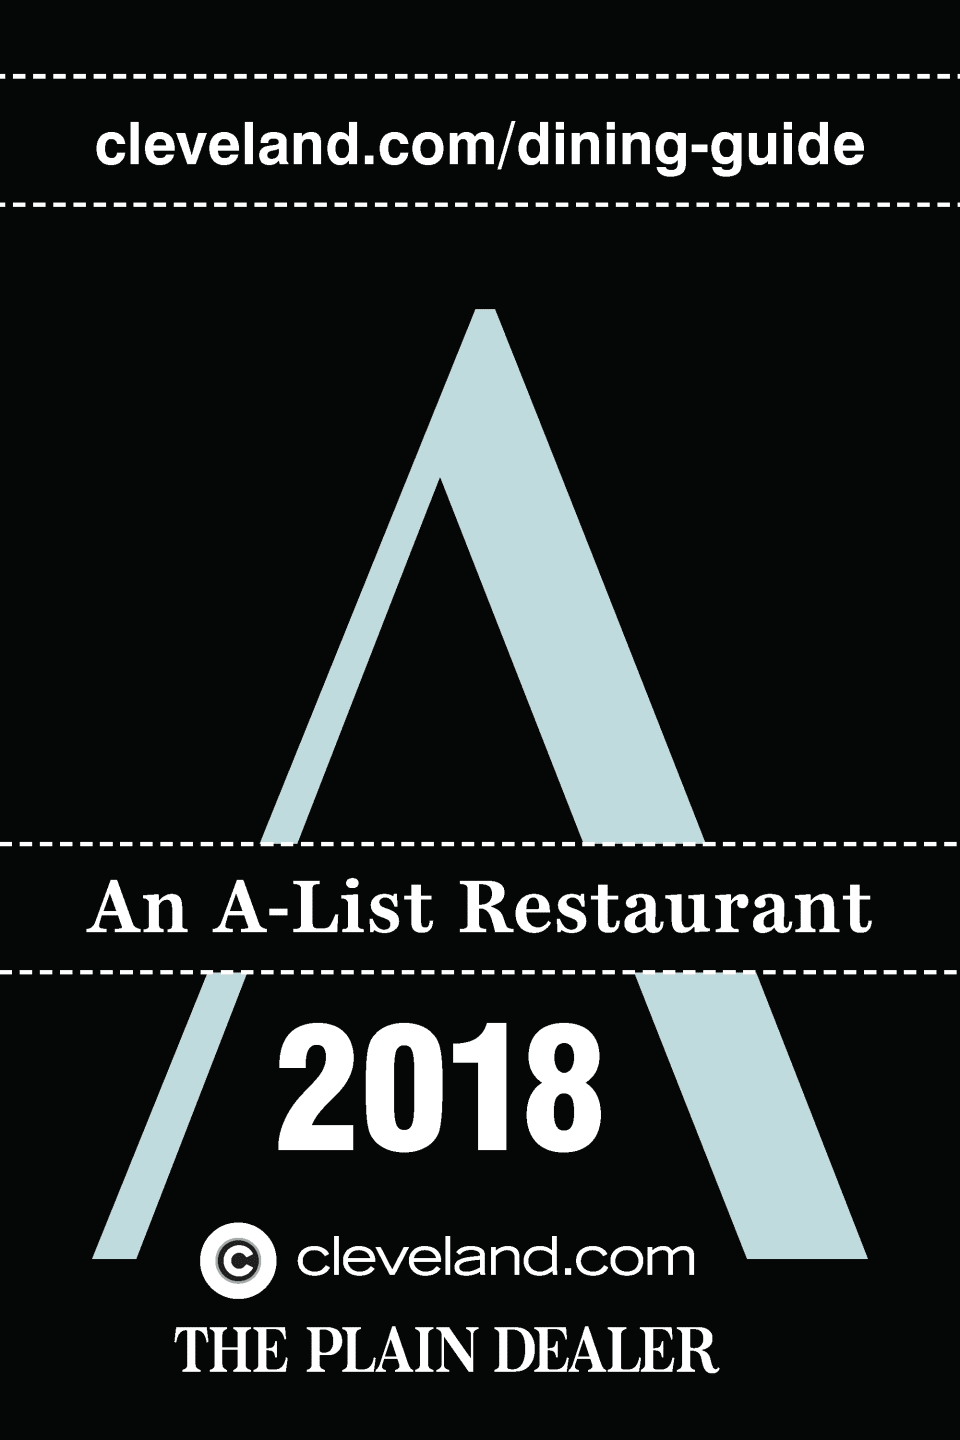 an a-list restaurant 2018 - the plain dealer cleveland.com/dining-guide